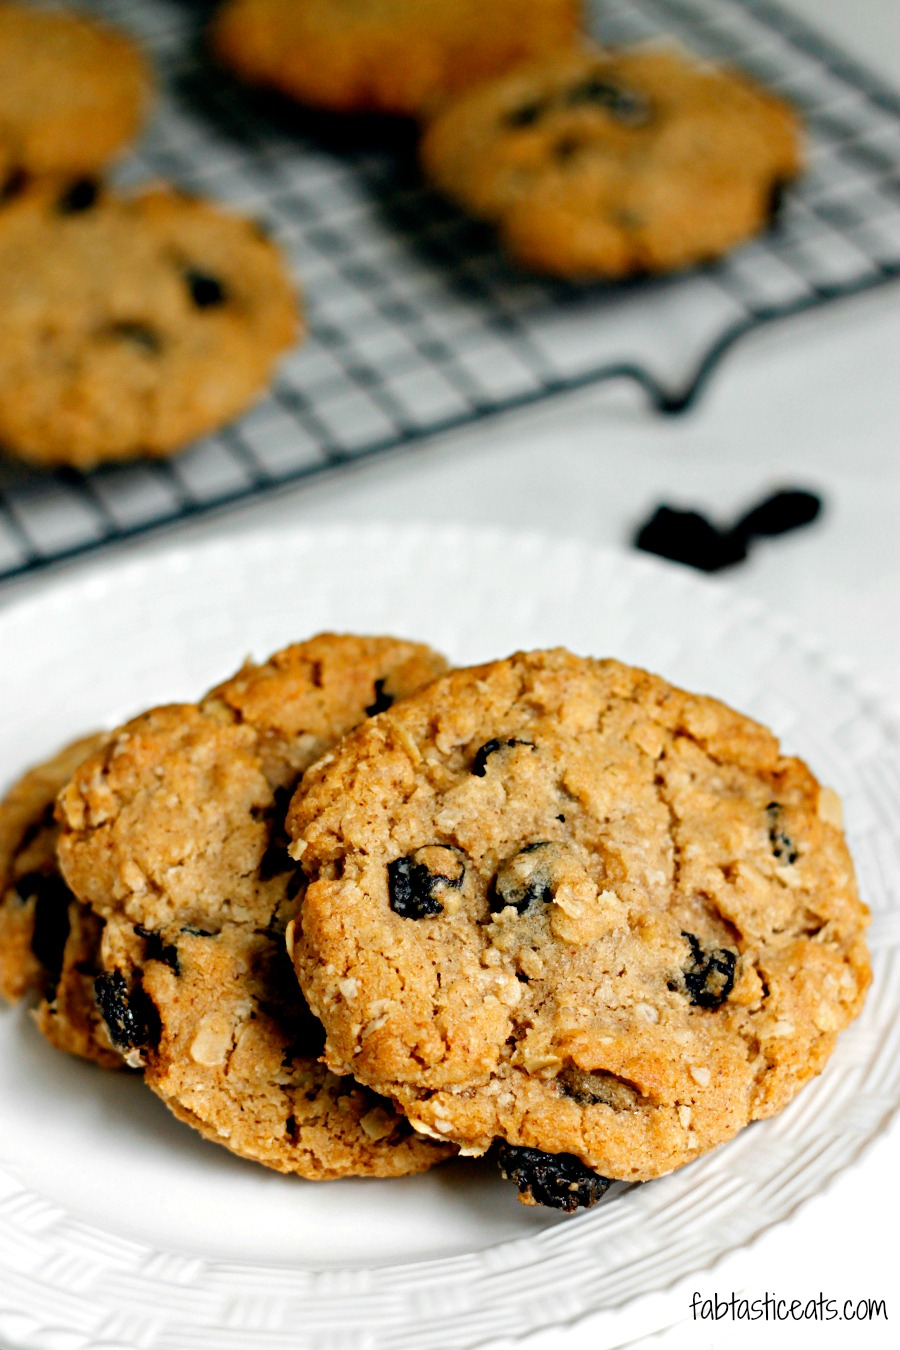 Crispy Oatmeal Raisin Cookies